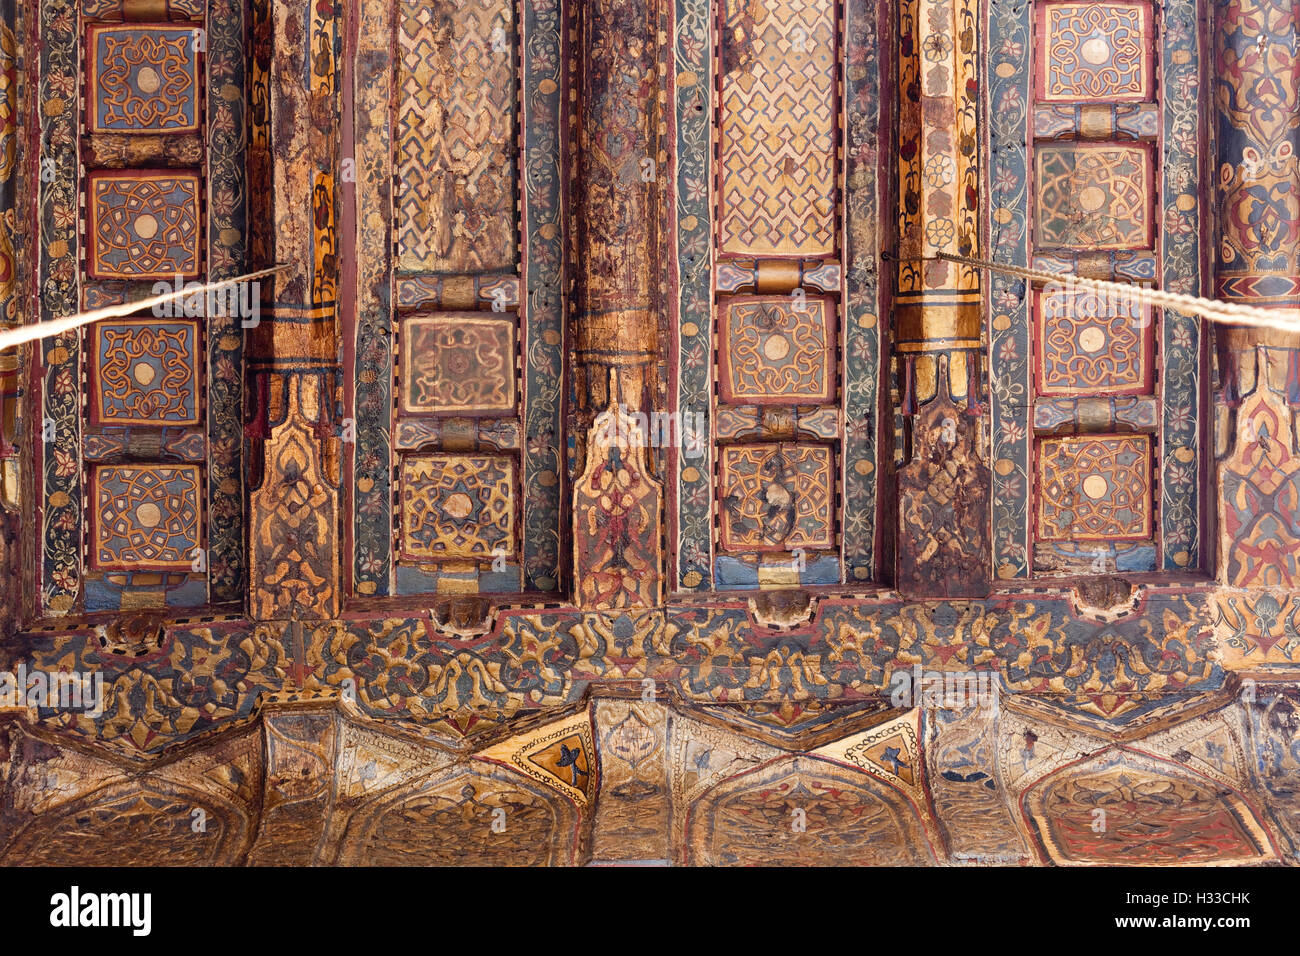 detail of painted ceiling, Madrasa of Yusuf ibn Ahmad Jamal al-Din al-Ustadar, Cairo, Egypt - Stock Image